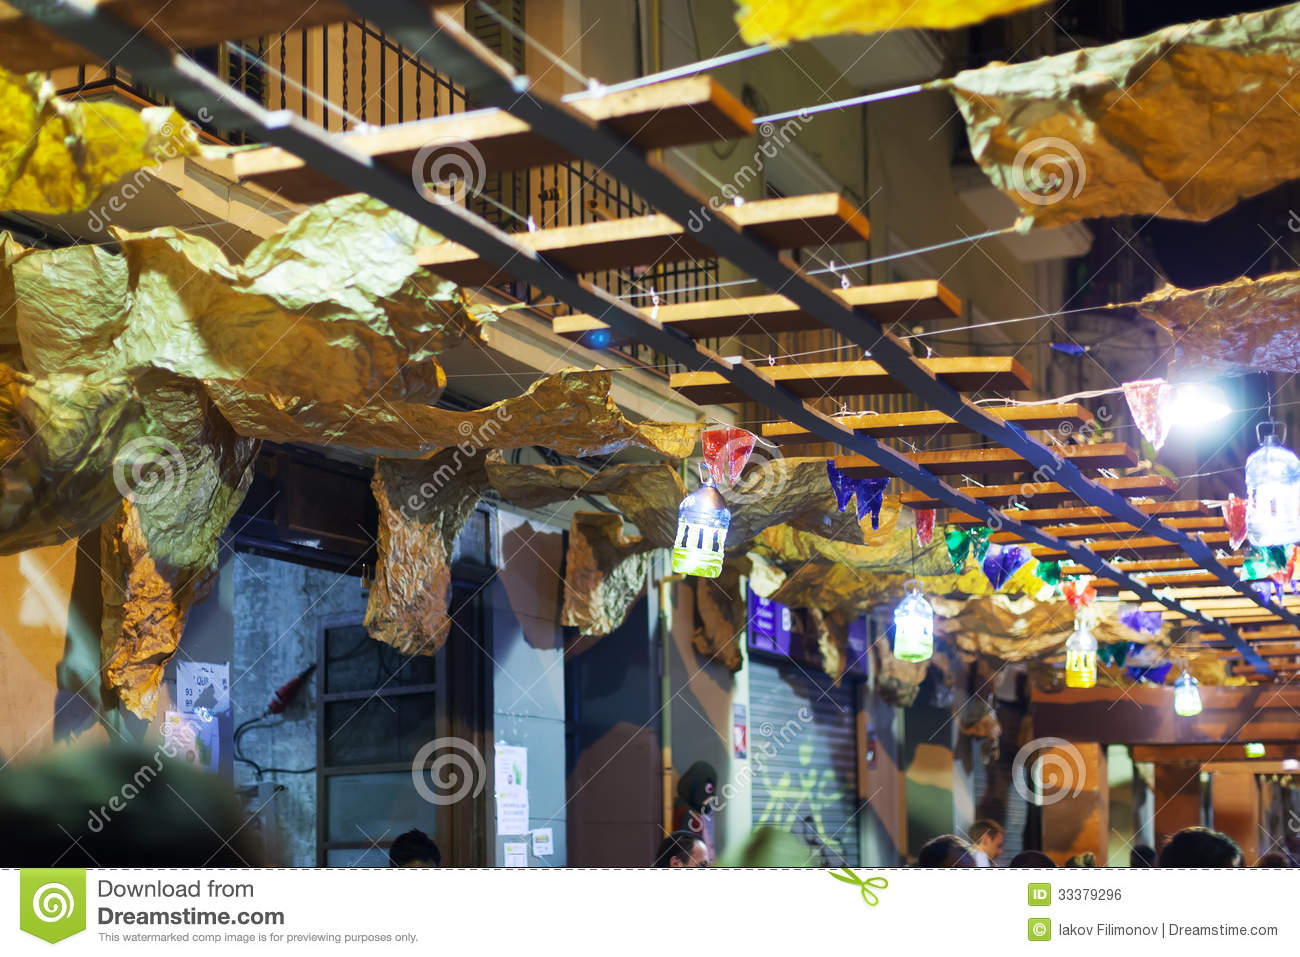 Gracia festival decorations in night barcelona spain for 15th august decoration ideas